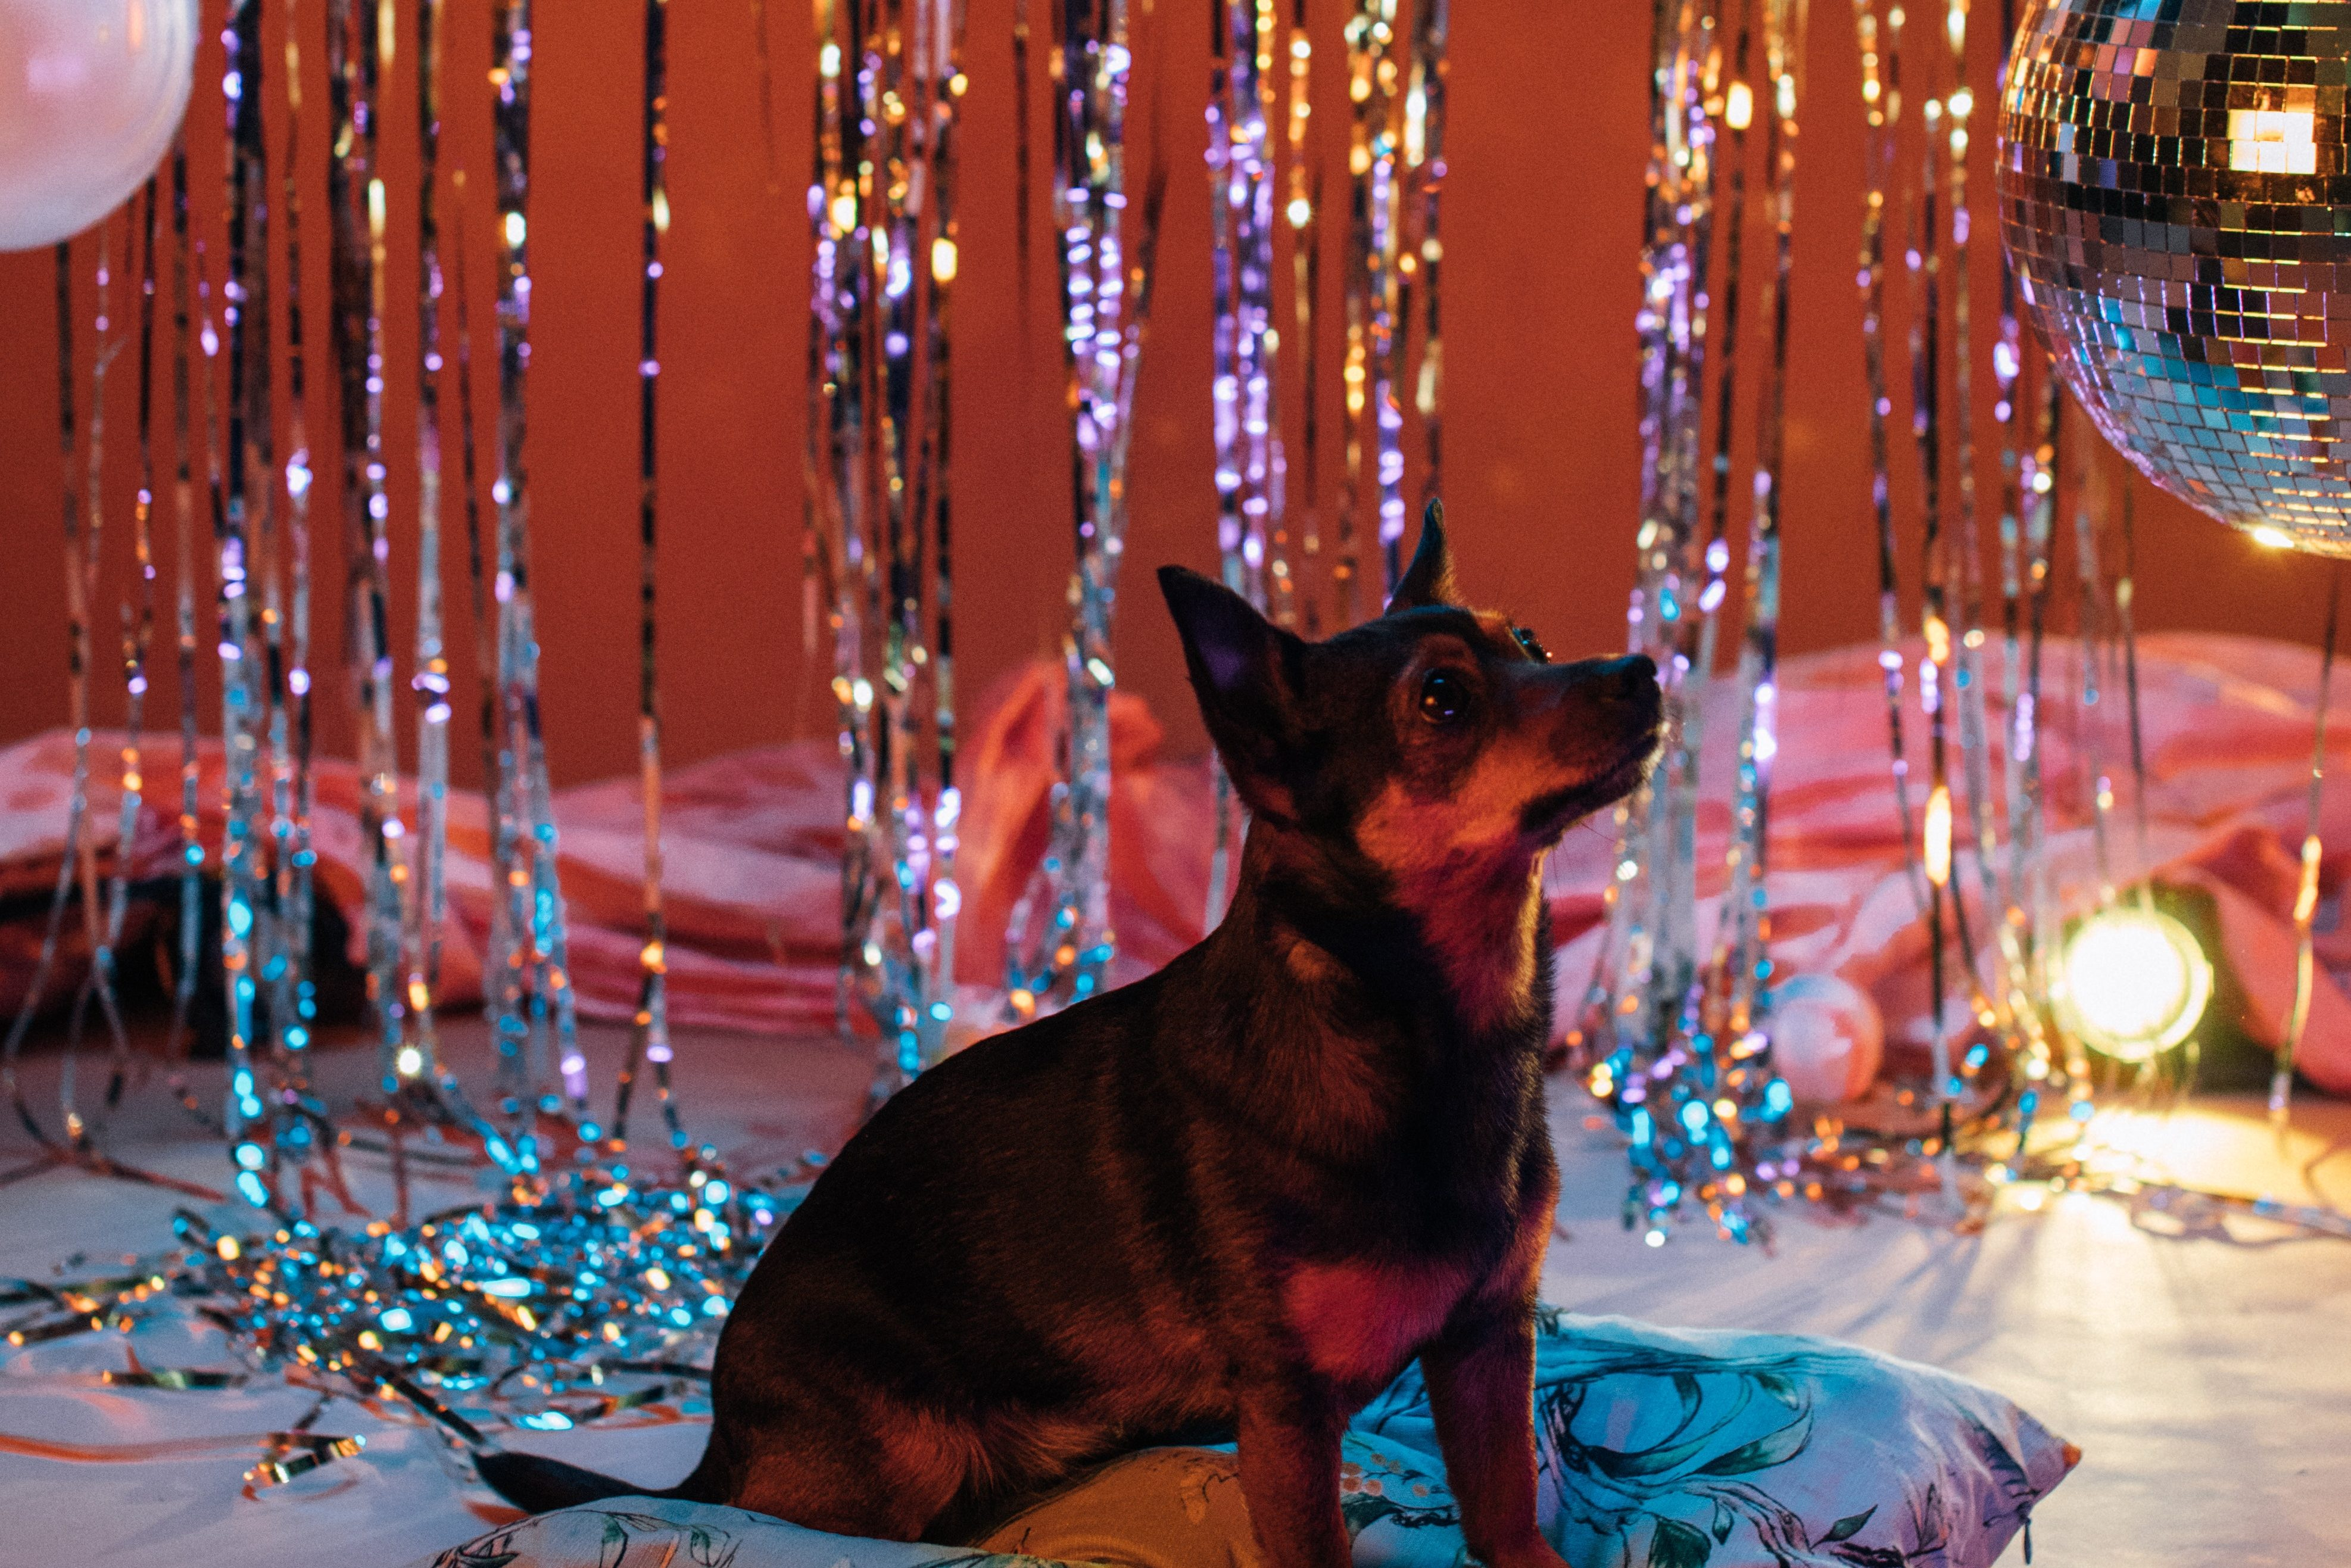 Top 10 Ideas for Your Dogs Birthday - Things to do for Your Dog's Special Day